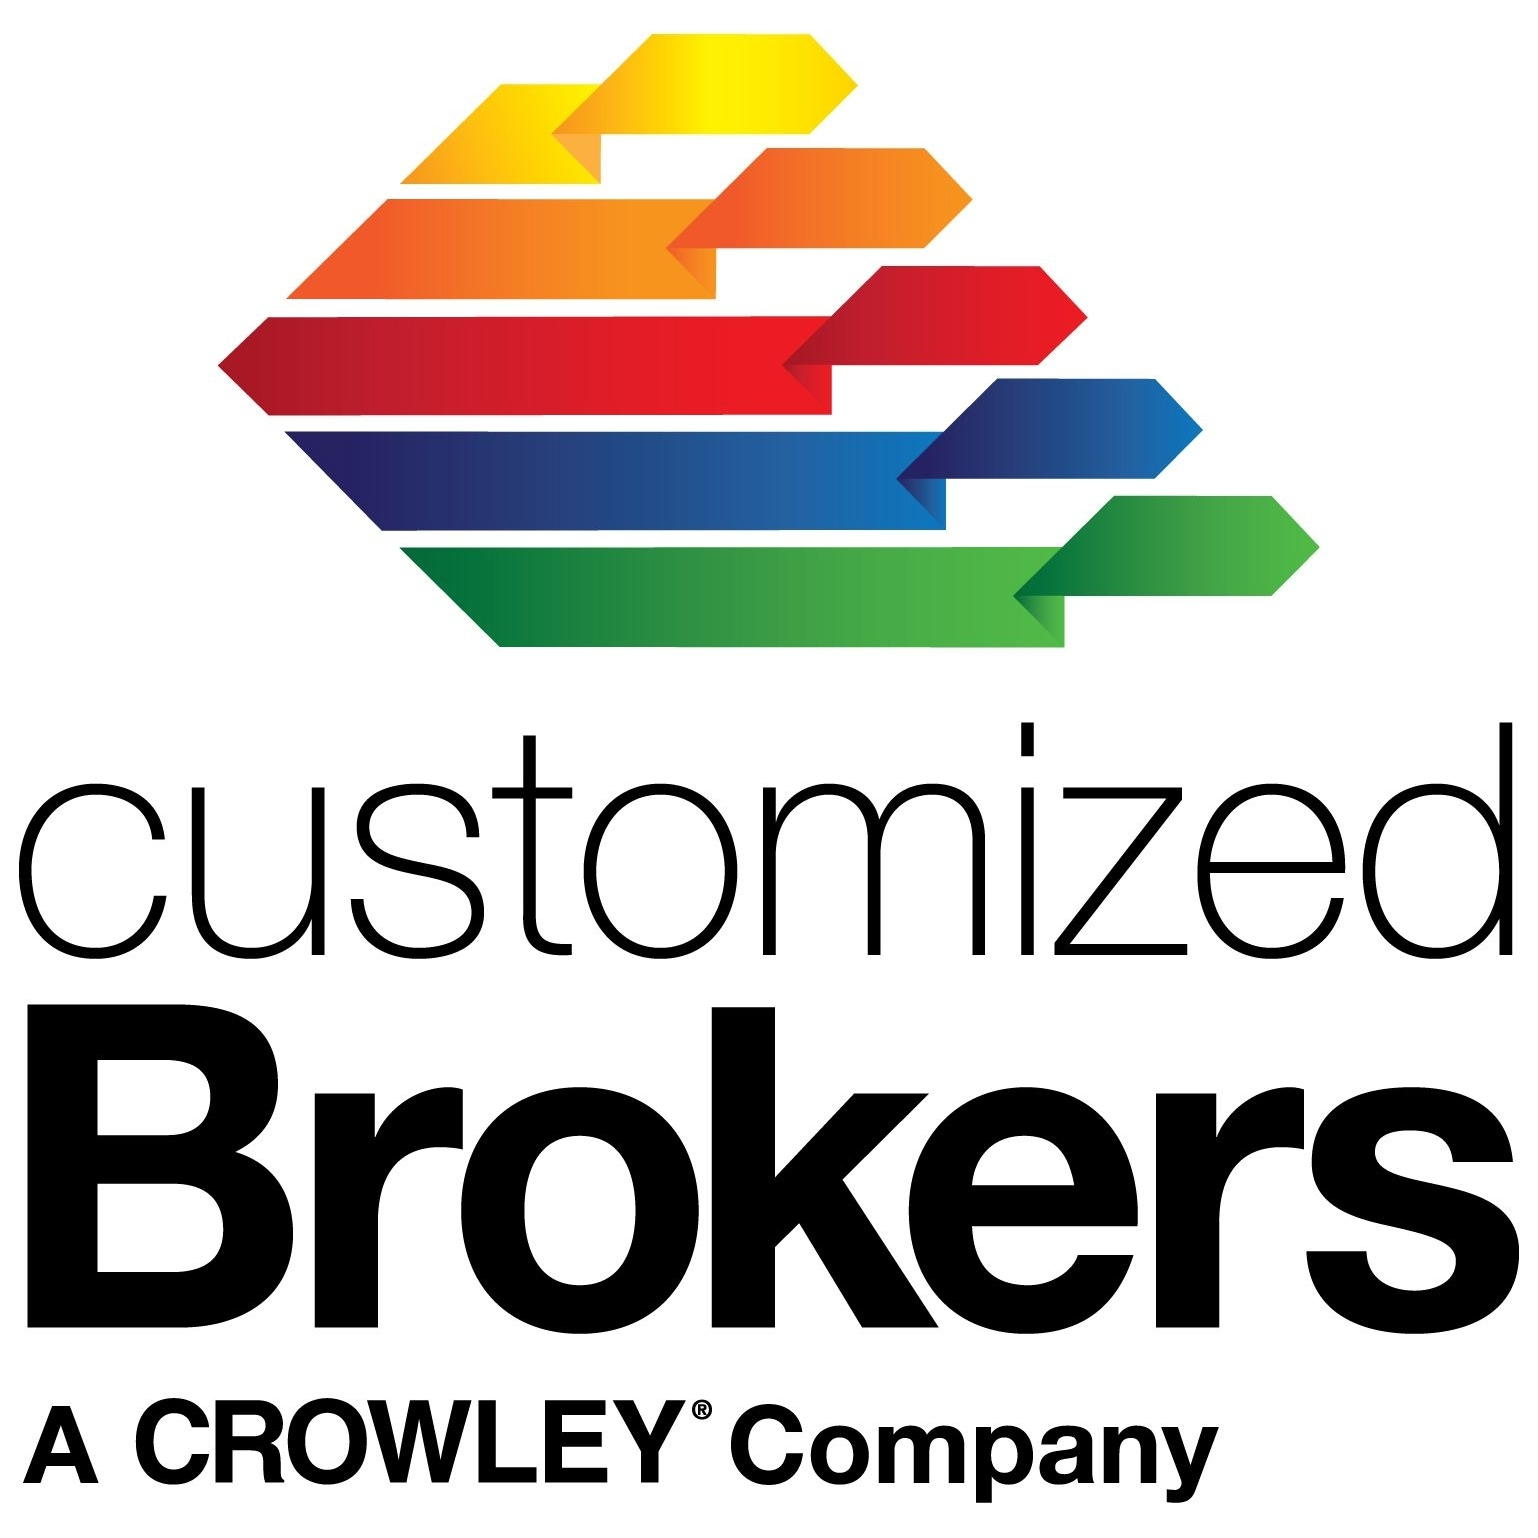 Customized Brokers - A Crowley Company